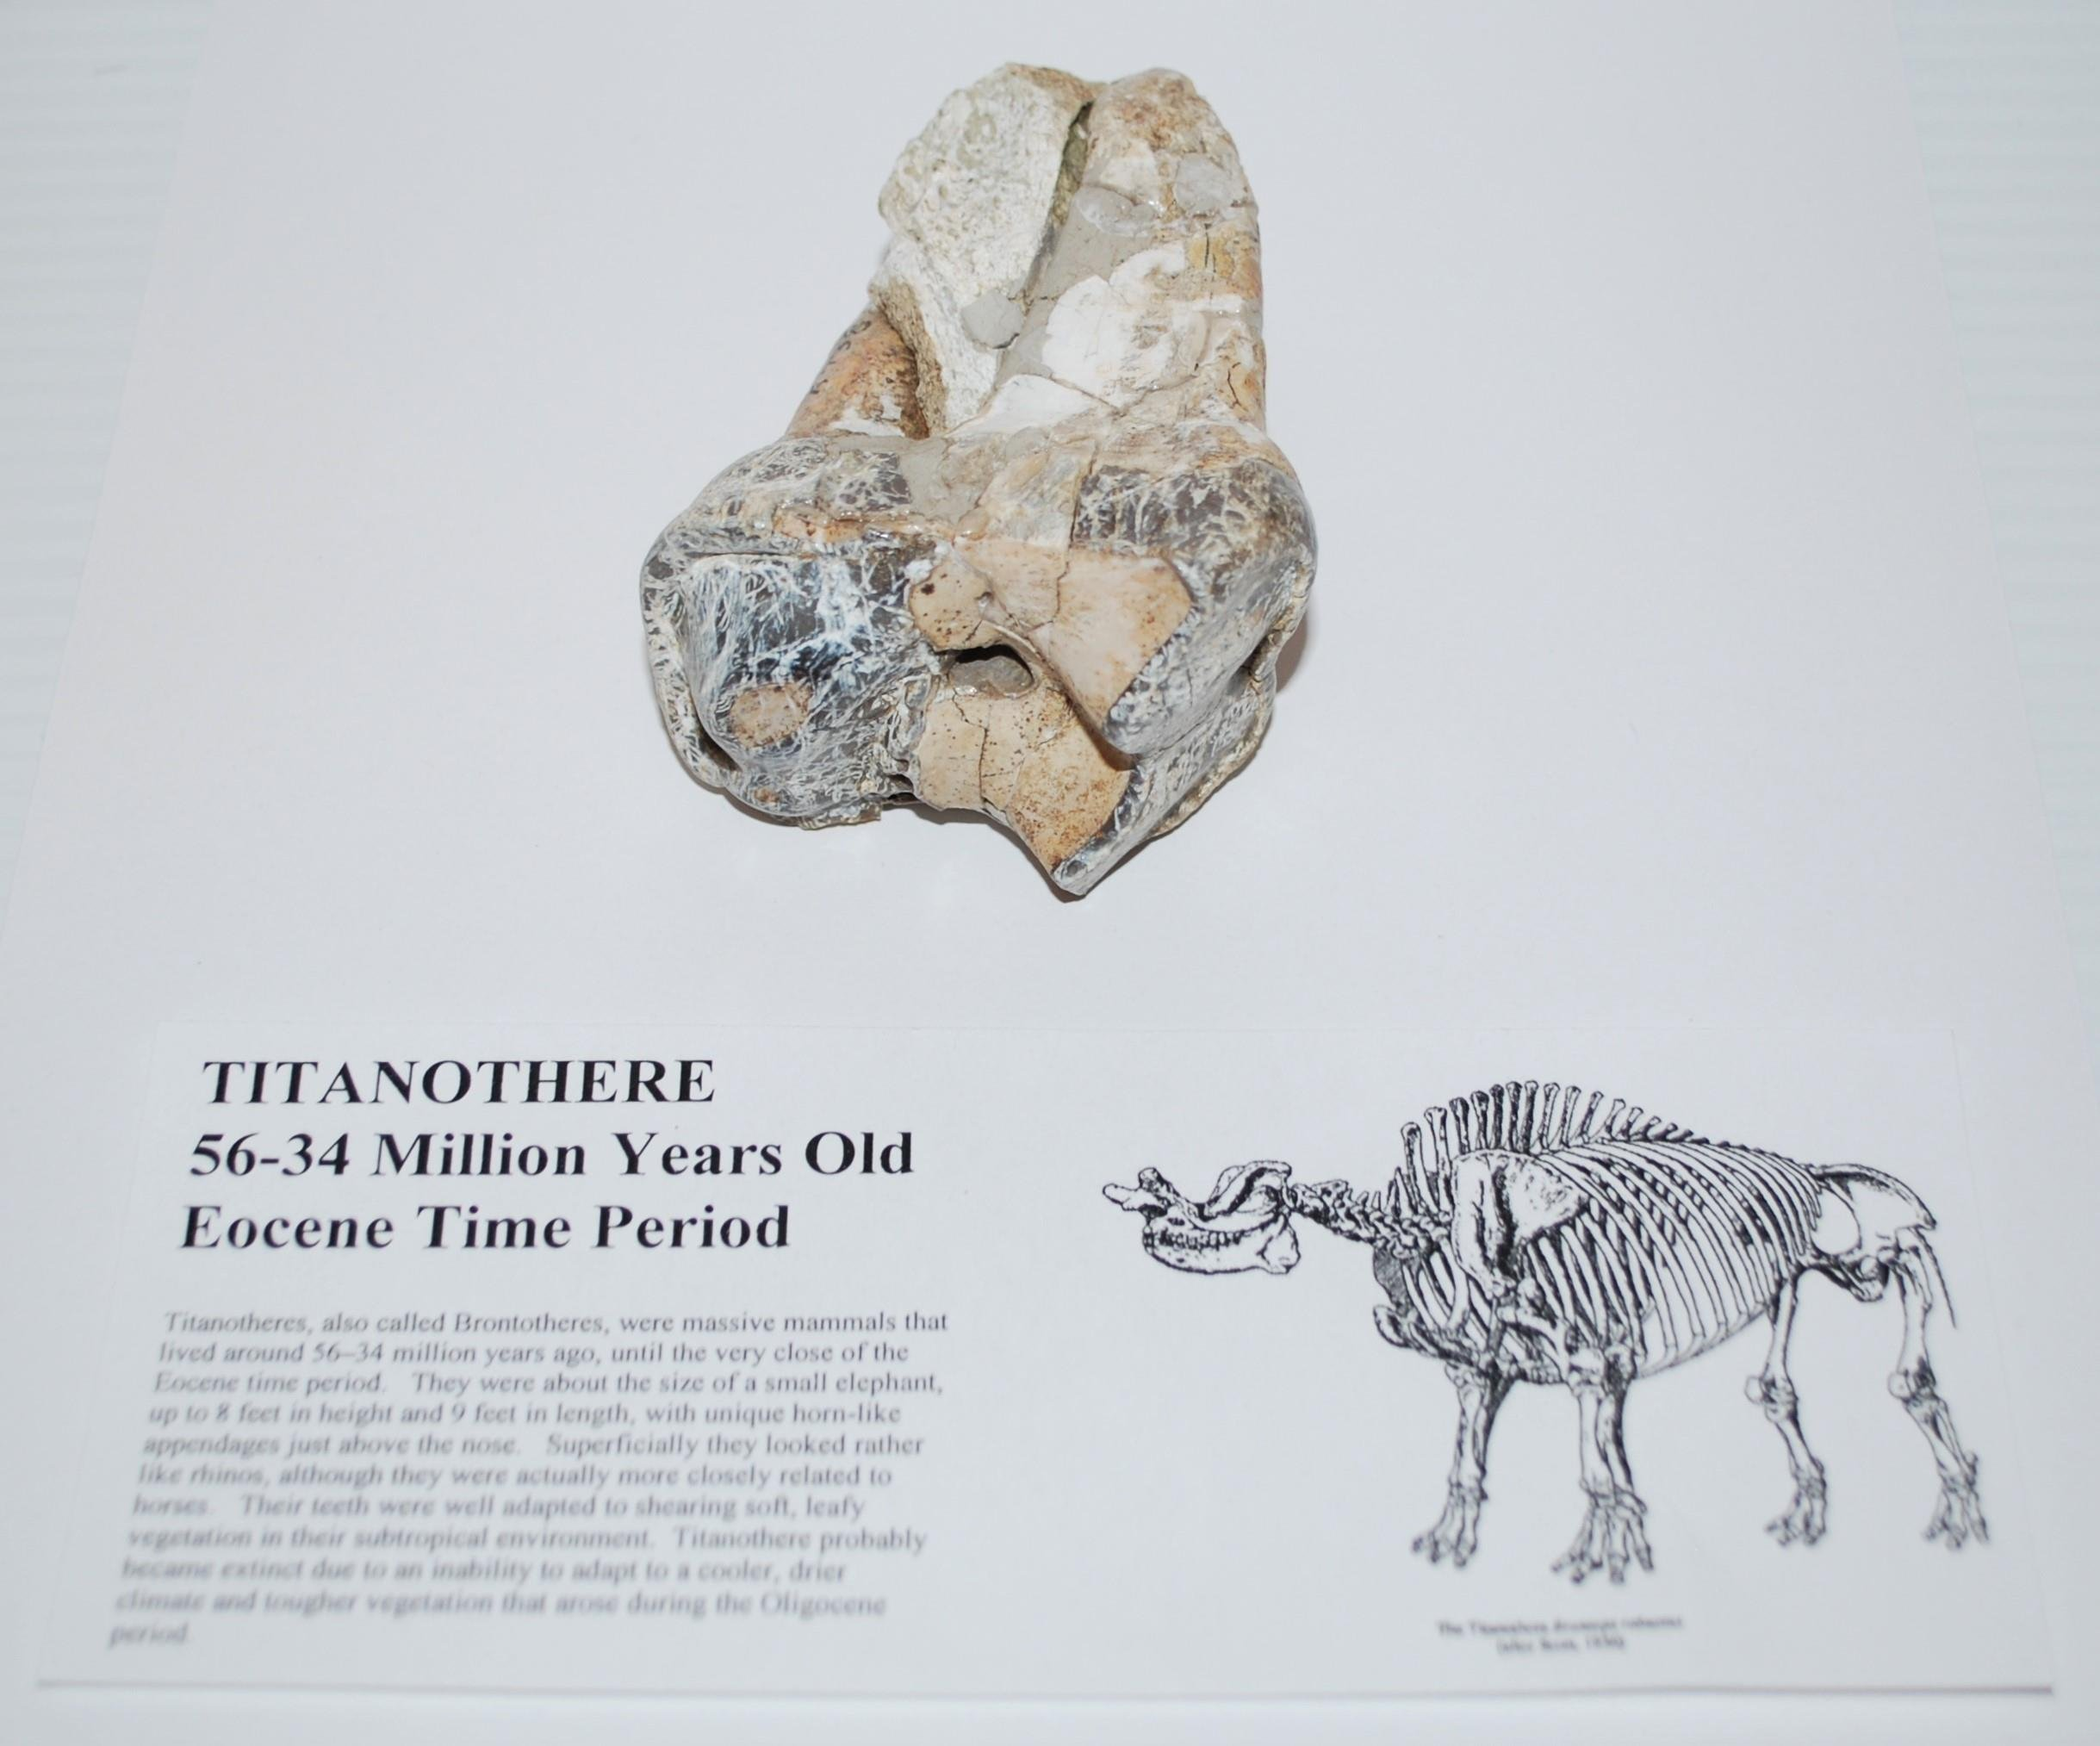 Titanothere Brontothere Tooth Fossil 50 Million Year Old #3156